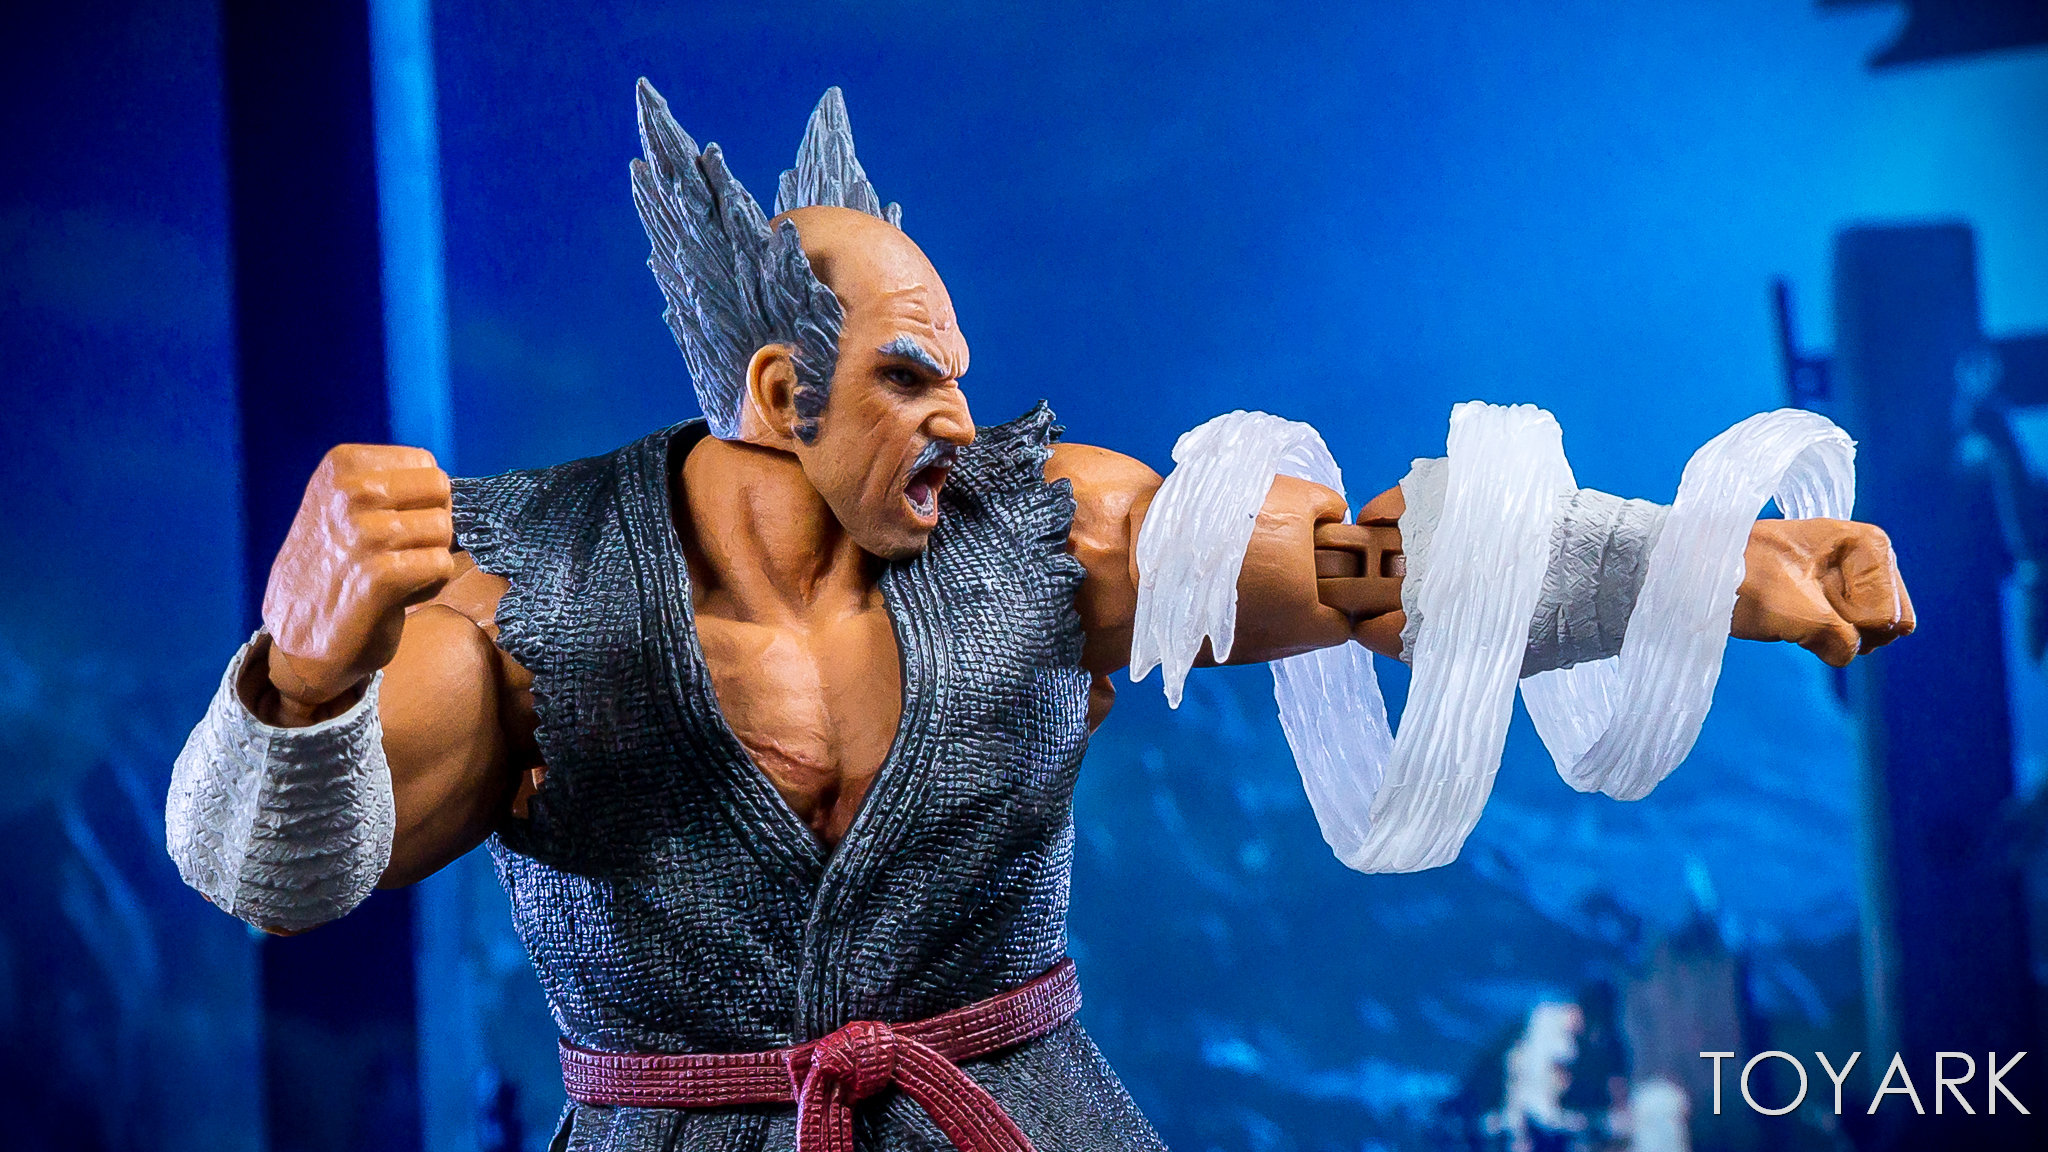 https://news.toyark.com/wp-content/uploads/sites/4/2018/05/Storm-Heihachi-Figure-025.jpg